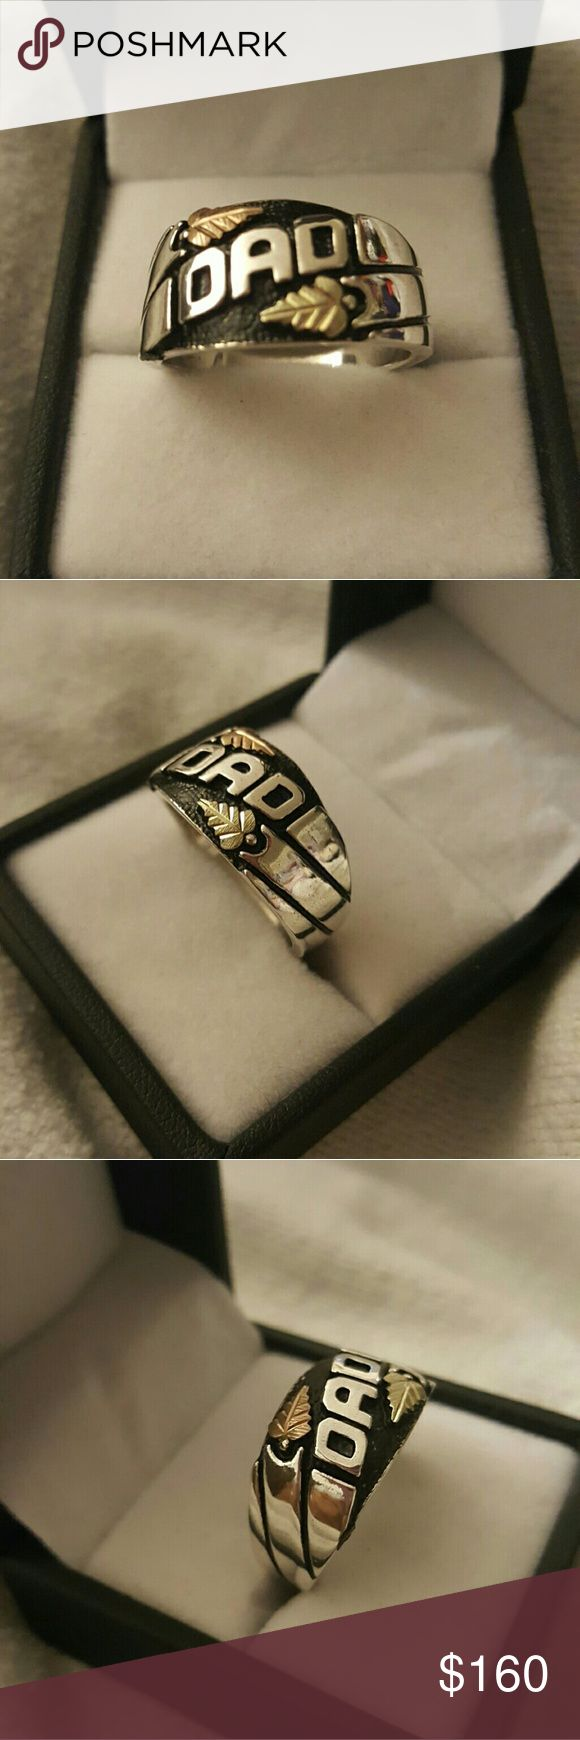 DADS RING BLACK HILLS GOLD BLACK HILLS GOLD 12K DAD STERLING SILVER RING  SZ 10.5 IN GOOD CONDITION  GREAT FOR YOUR SELF OR FOR THAT SOMEONE SPECIAL COMES IN A GIFT BOX BLACK HILLS GOLD BY COLEMAN Accessories Jewelry